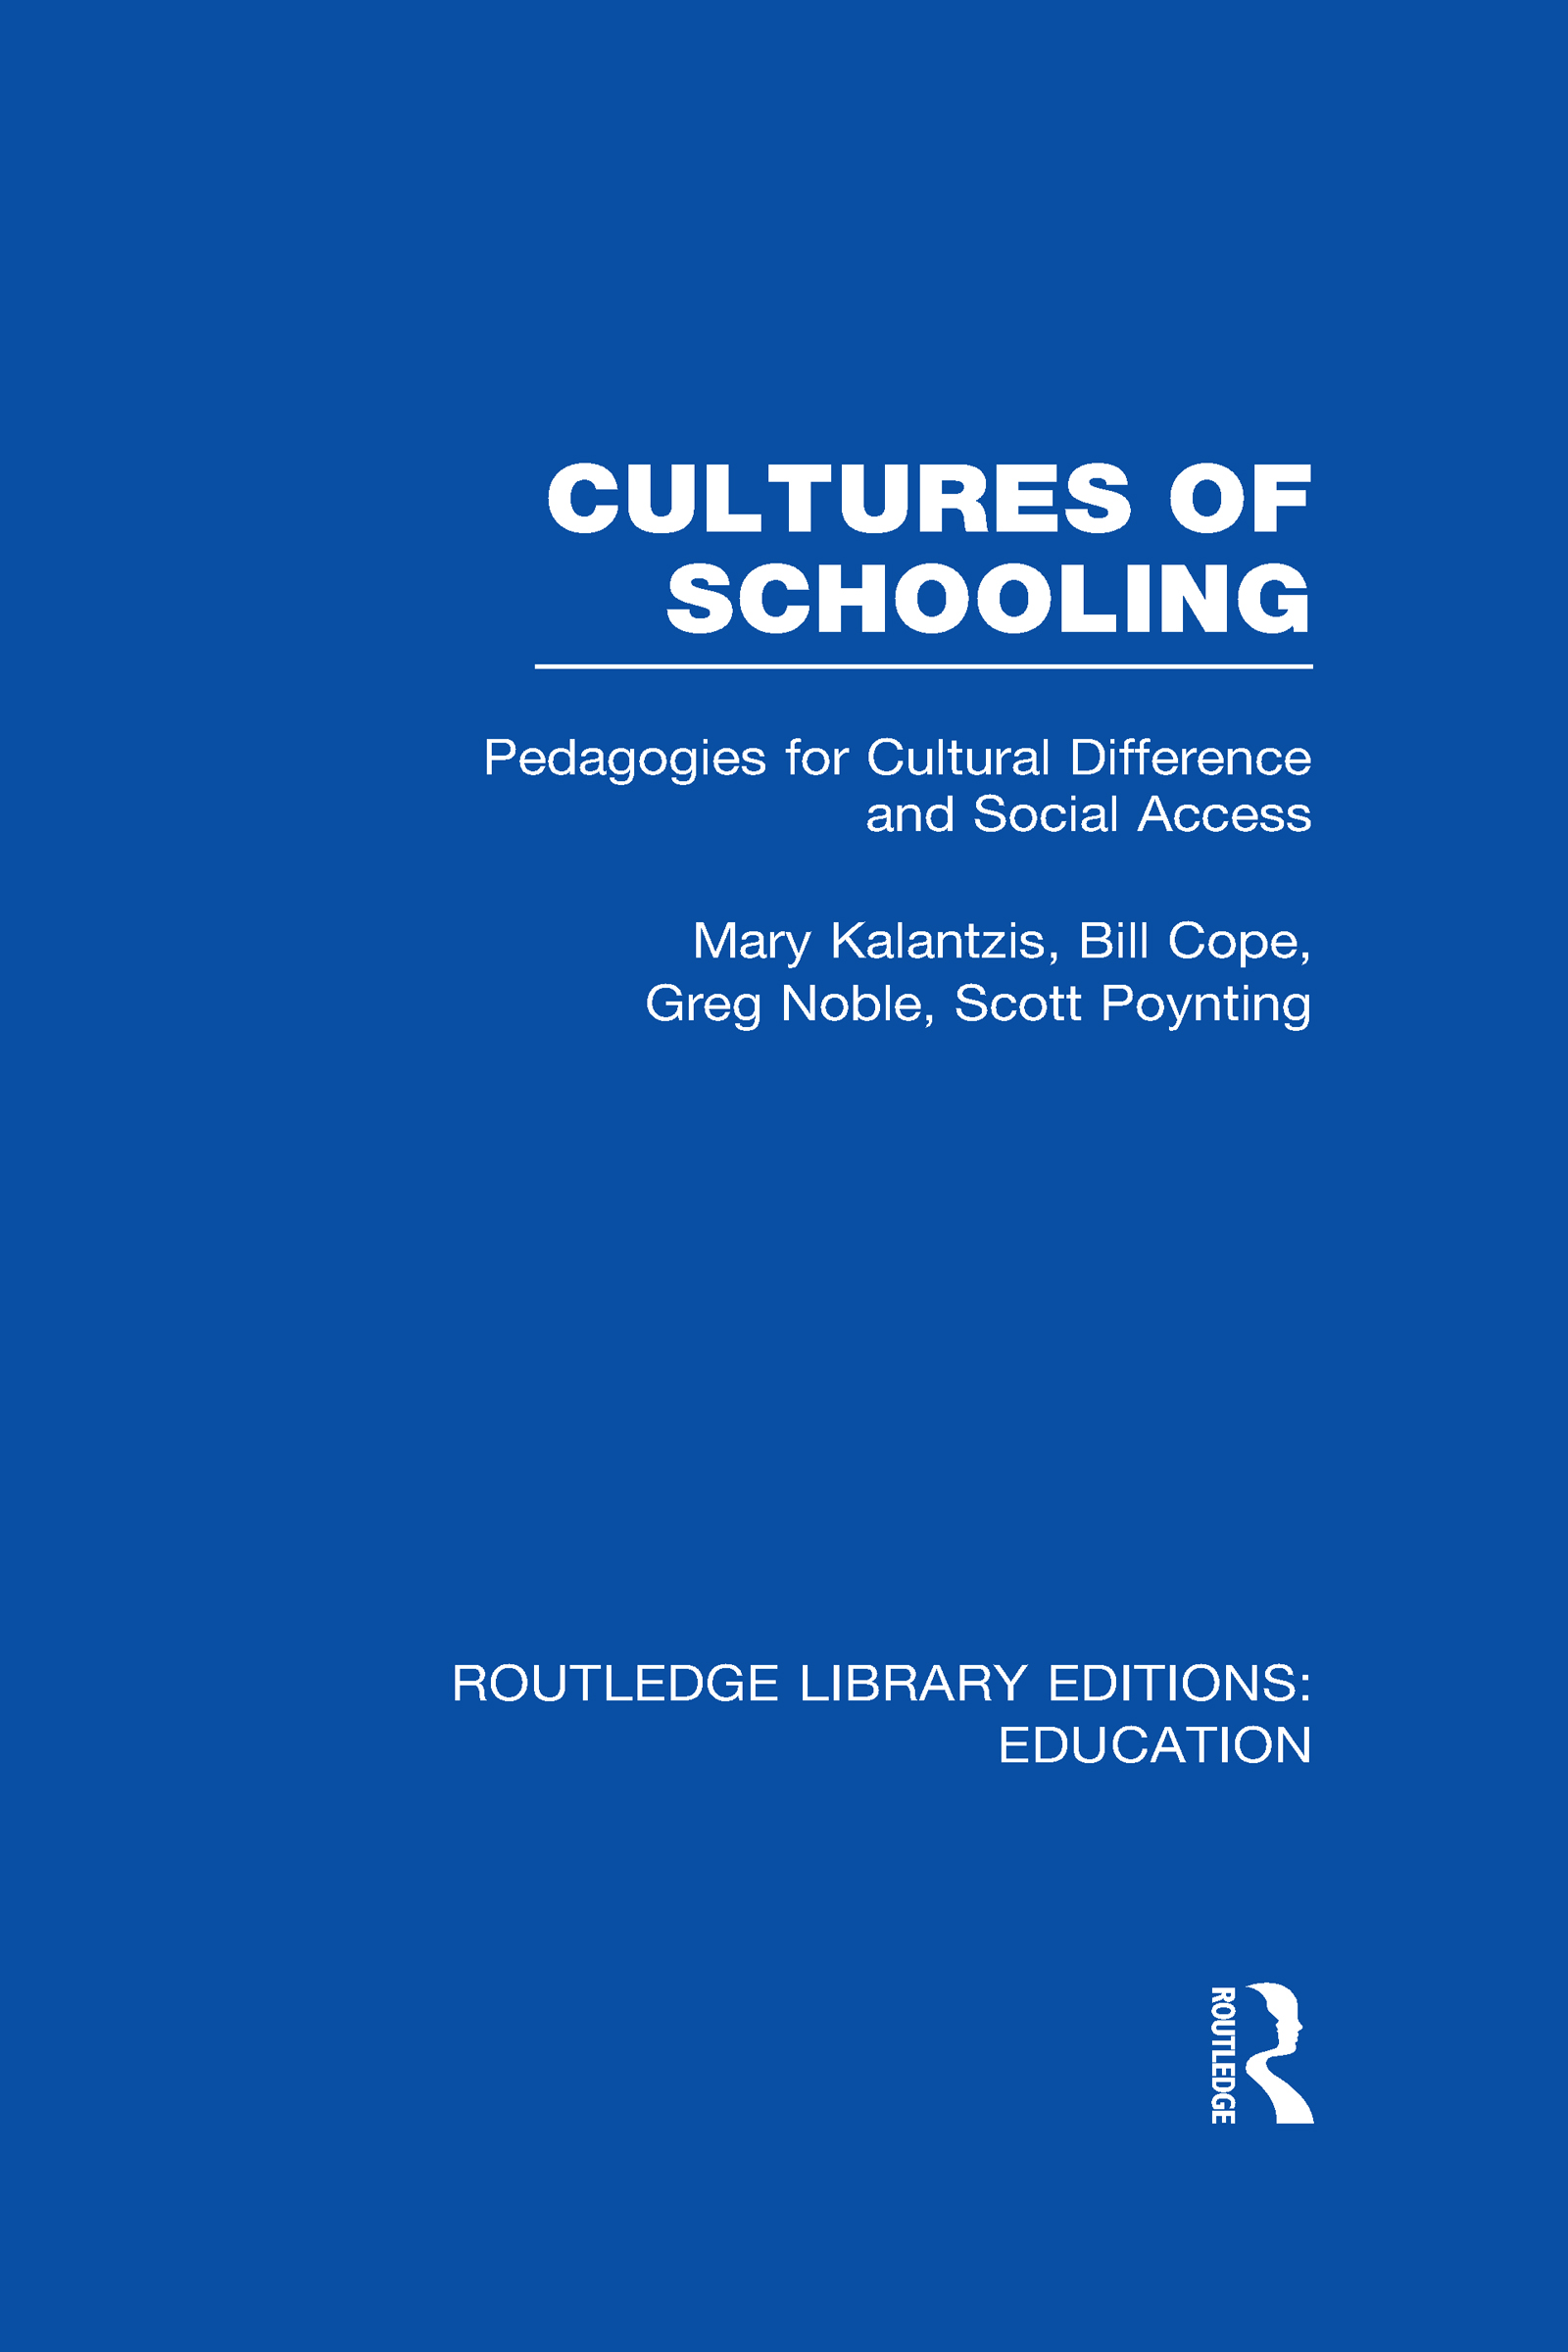 Cultures of Schooling (RLE Edu L Sociology of Education): Pedagogies for Cultural Difference and Social Access (Hardback) book cover